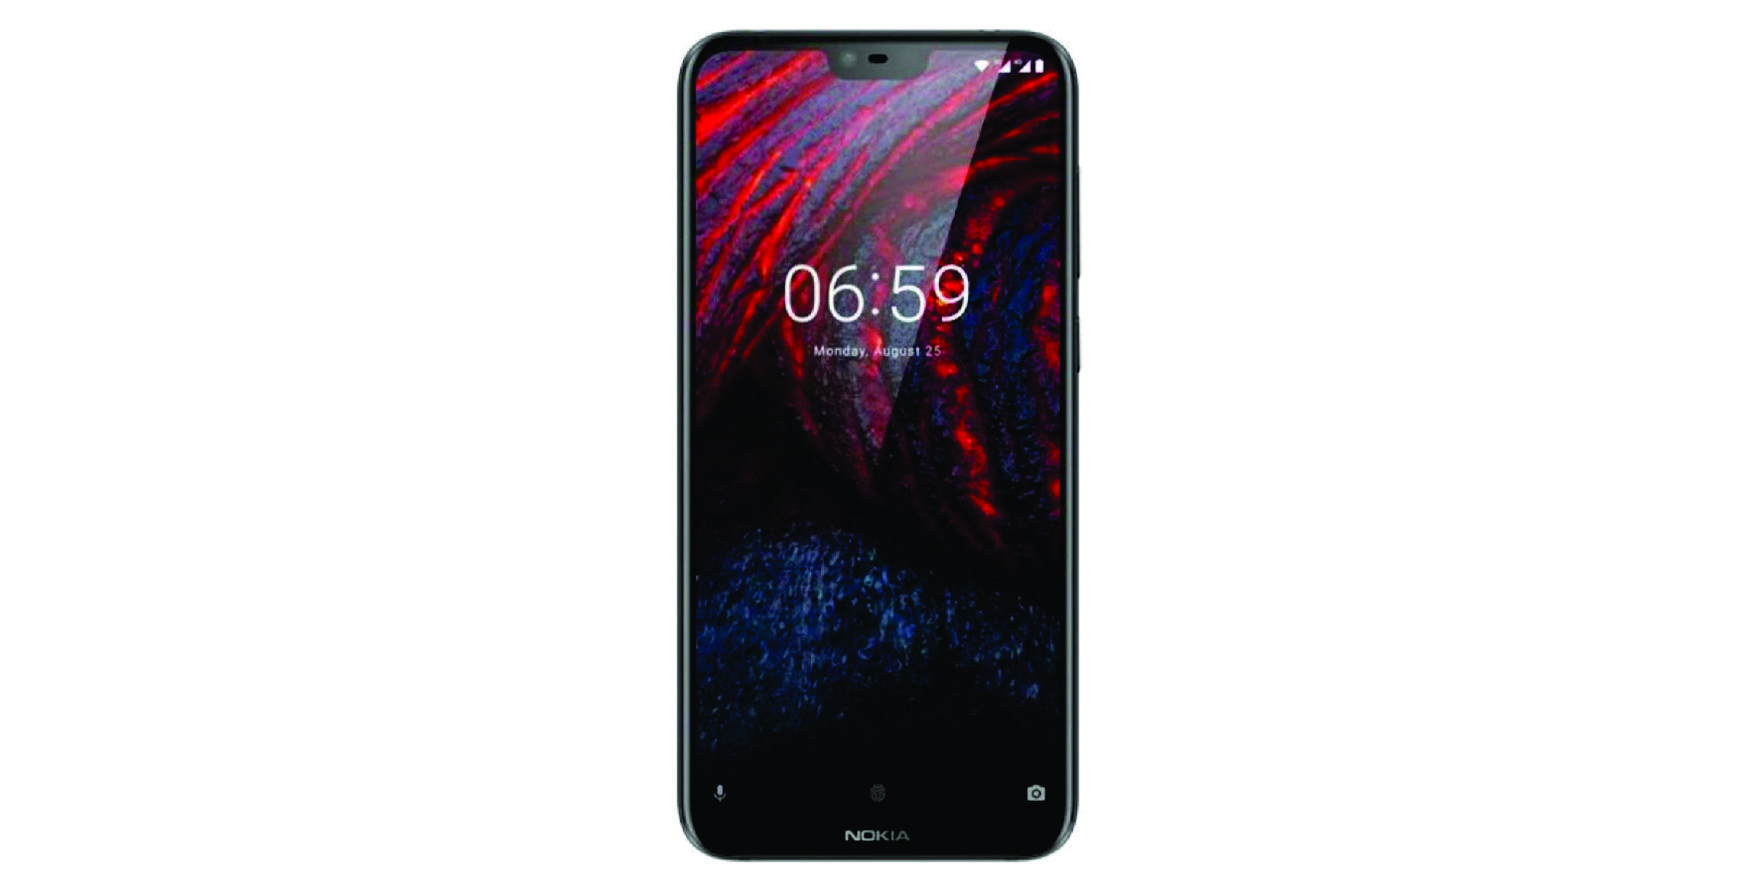 Nokia 6.1 Plus SmartPhone (With images) Nokia, Nokia 6